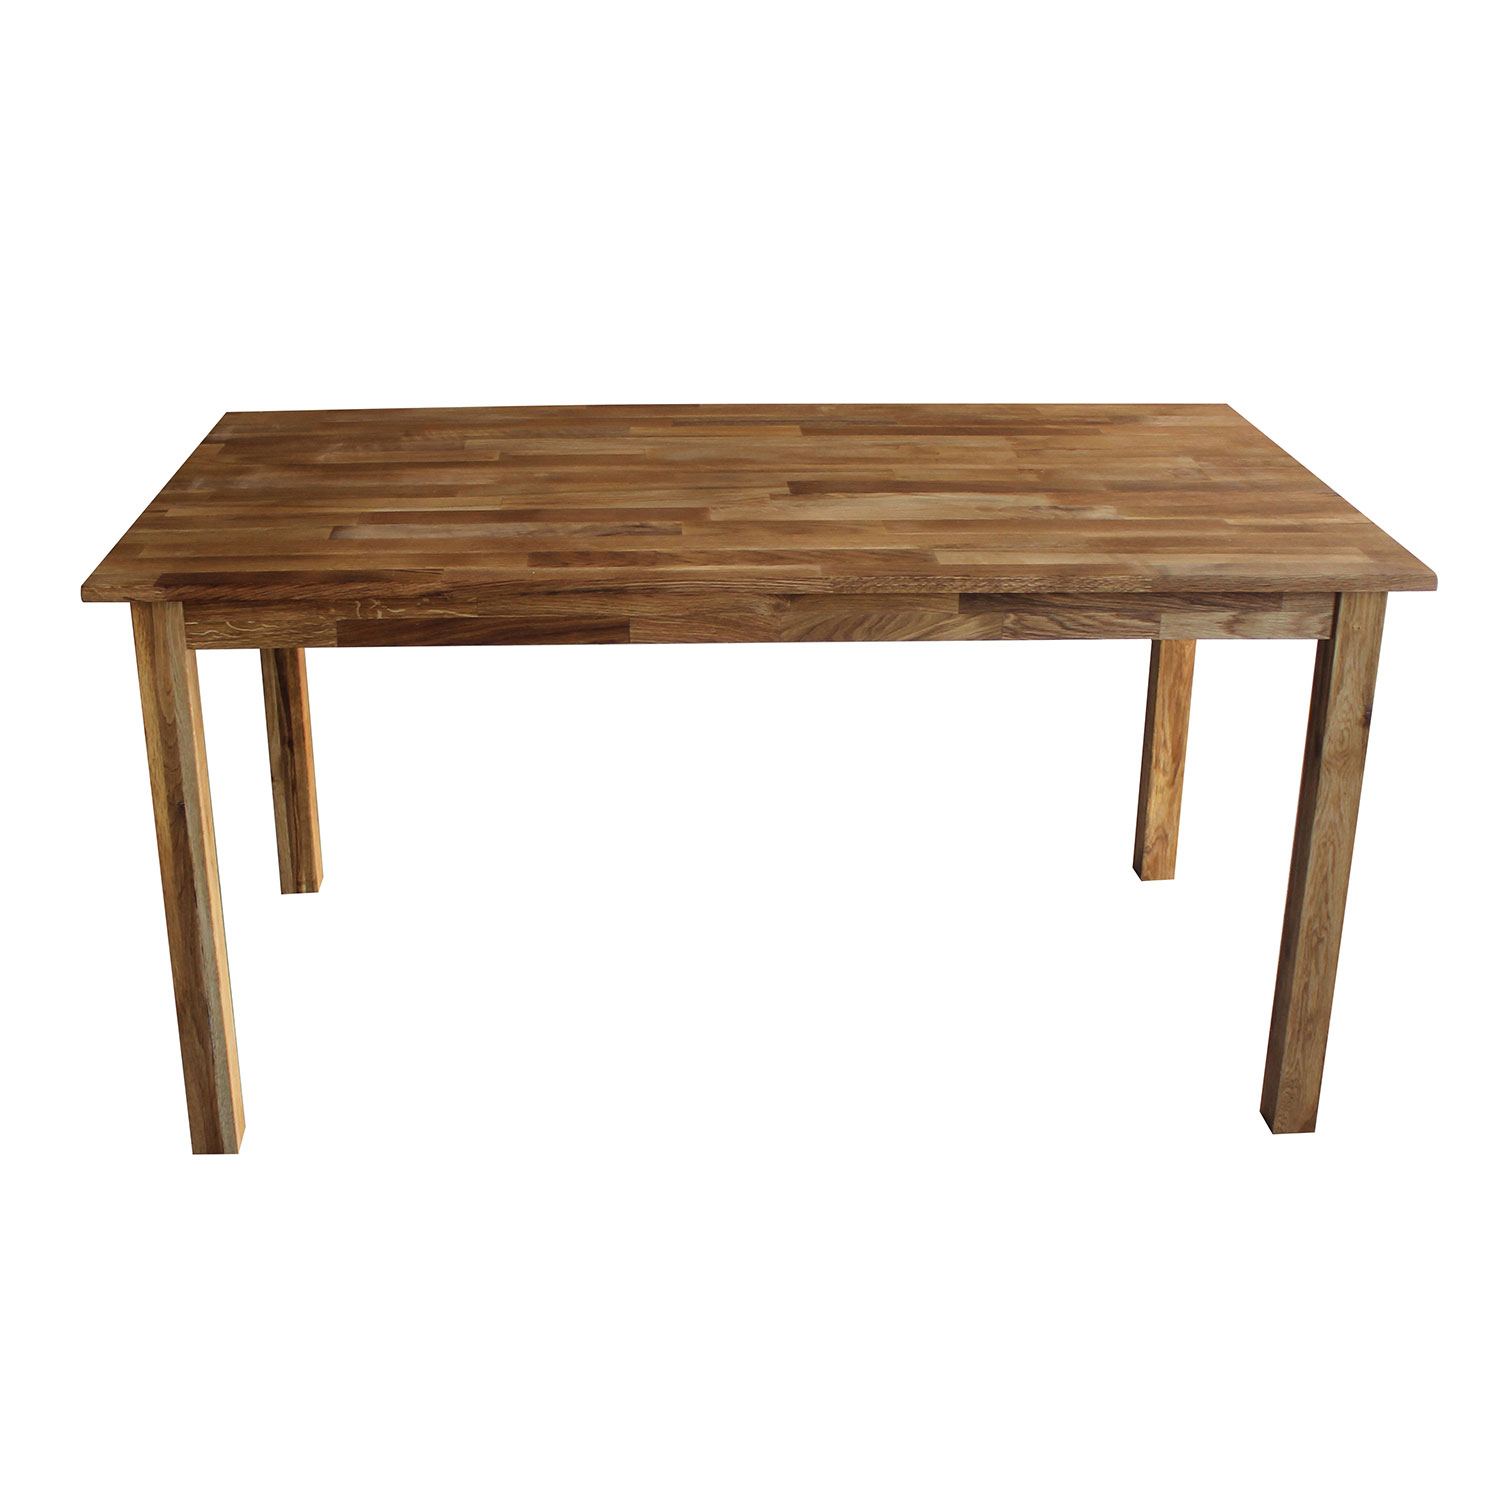 Charles bentley solid oak 6 8 seater wooden dining table for Dinner table wood